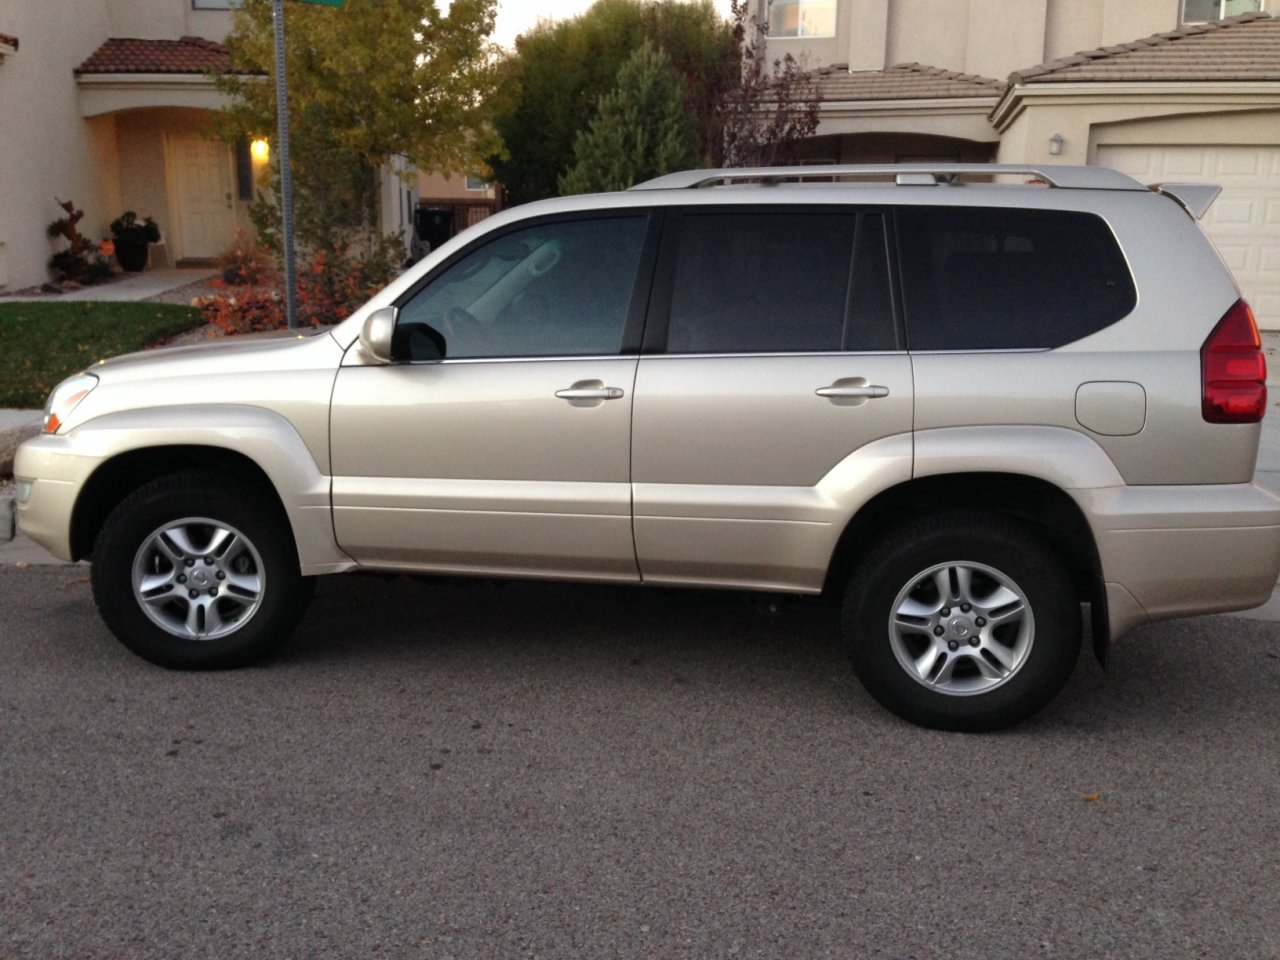 for sale 2006 lexus gx 470 ih8mud forum. Black Bedroom Furniture Sets. Home Design Ideas